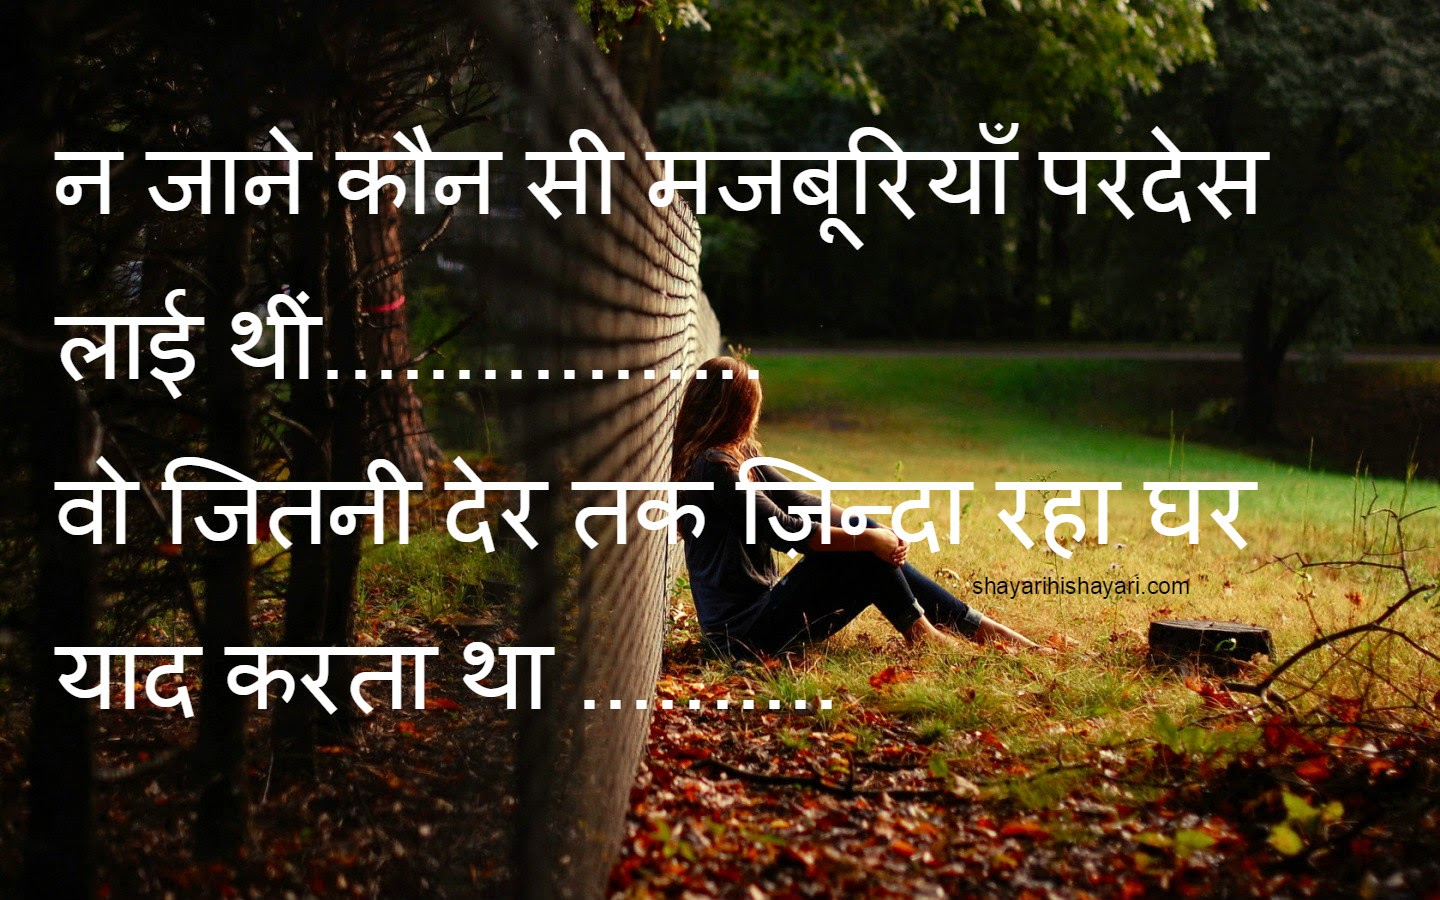 Lonely Sad Wallpapers In Hindi Letest Sad girls Shyar...